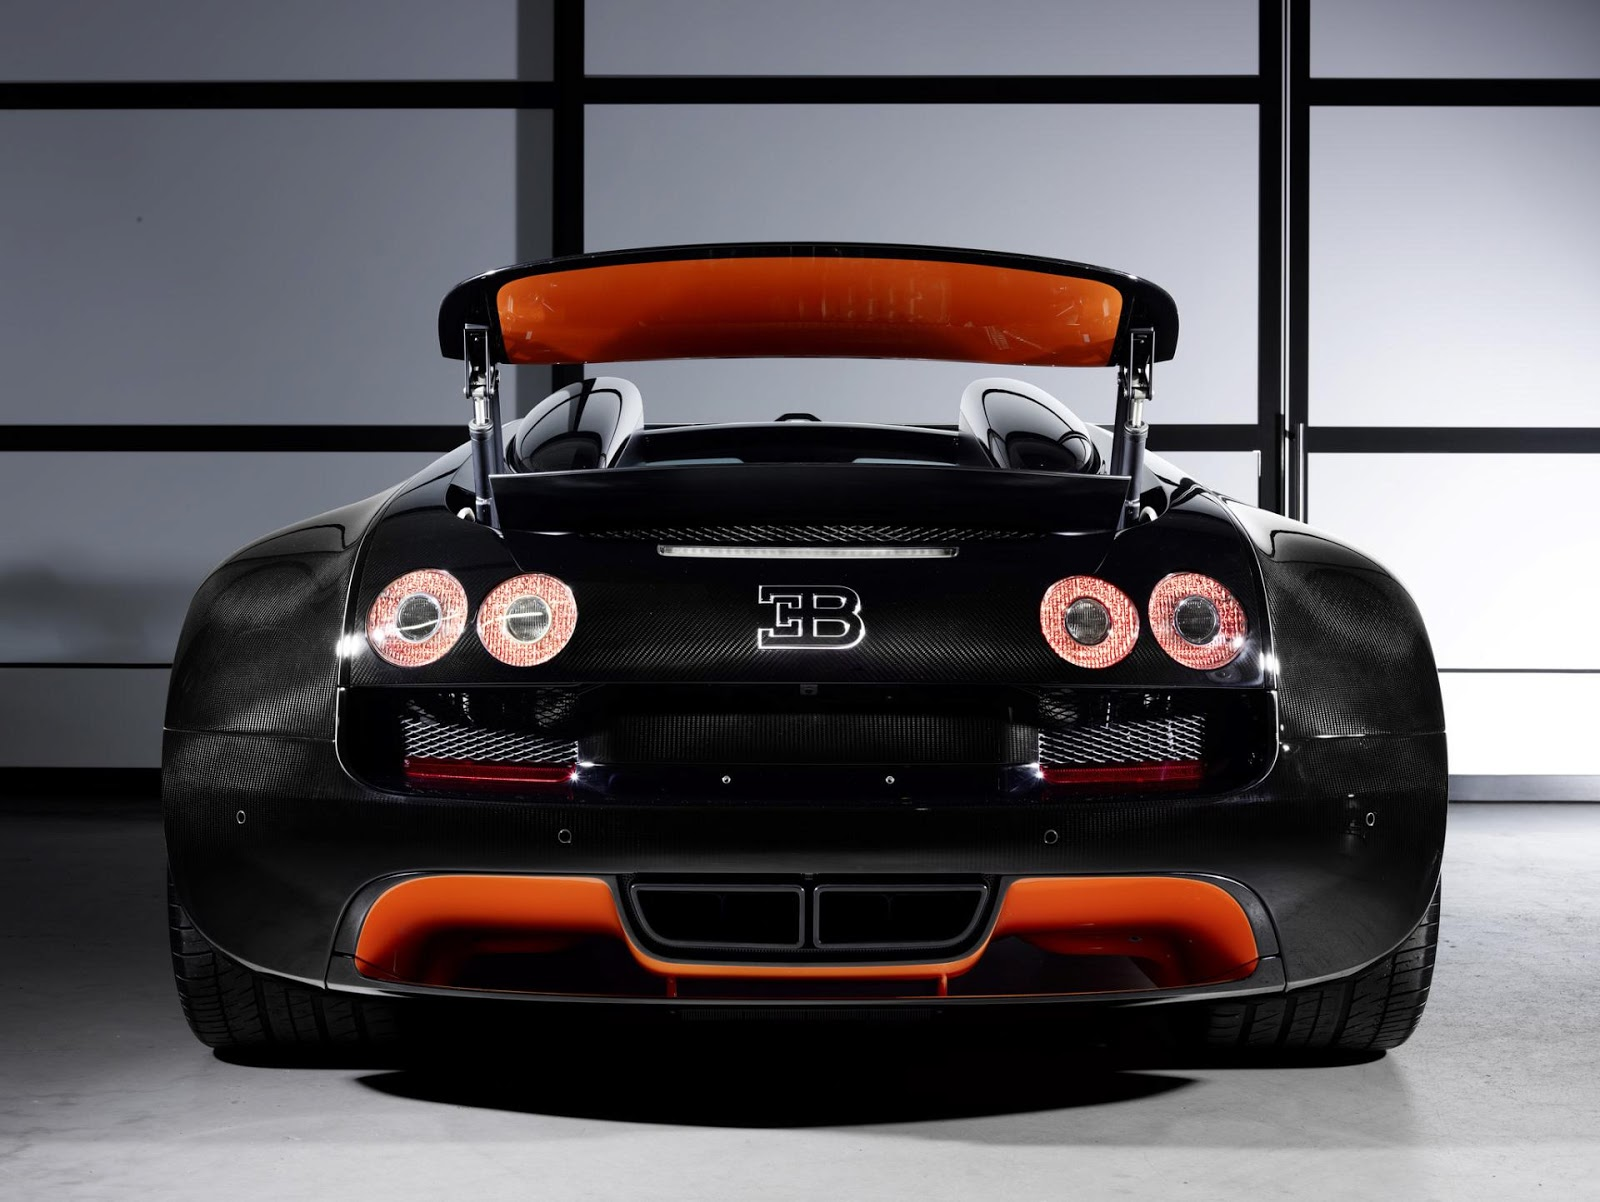 bugatti veyron grand sport vitesse wrc 2013 hottest car wallpapers bestgarage. Black Bedroom Furniture Sets. Home Design Ideas